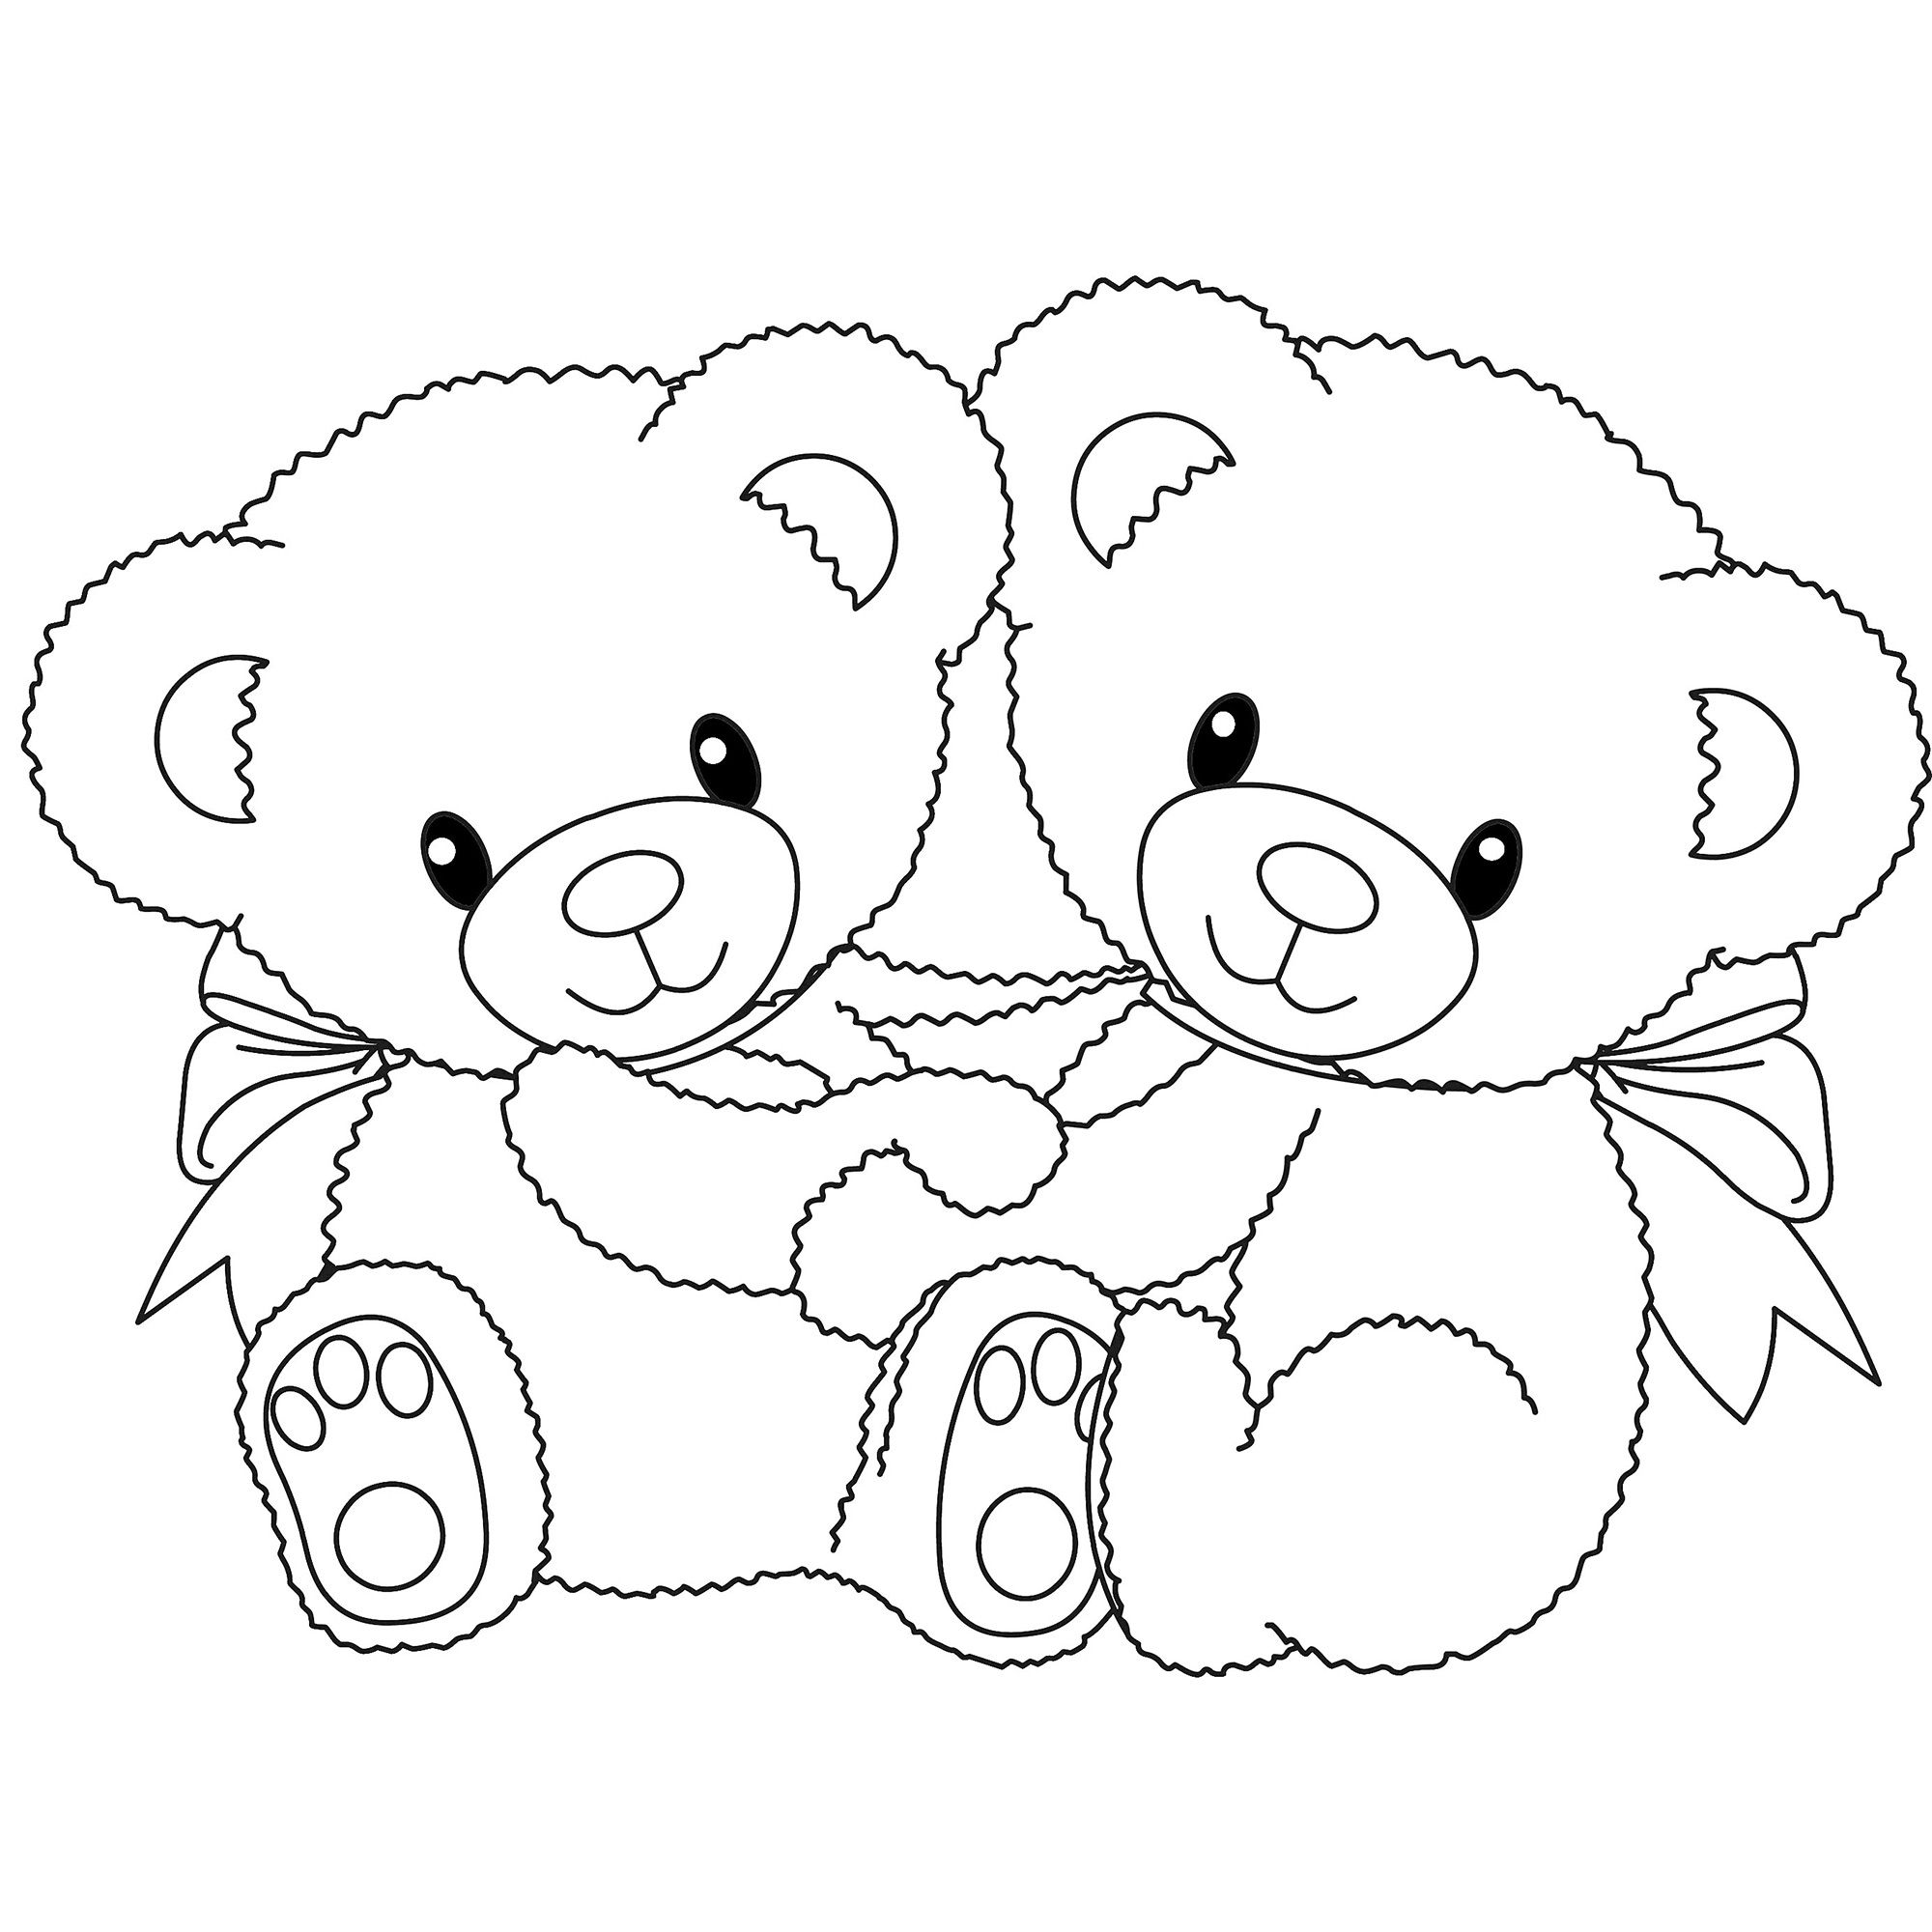 coloring pages bear Teddy bear coloring pages free printable coloring pages | Fun  coloring pages bear